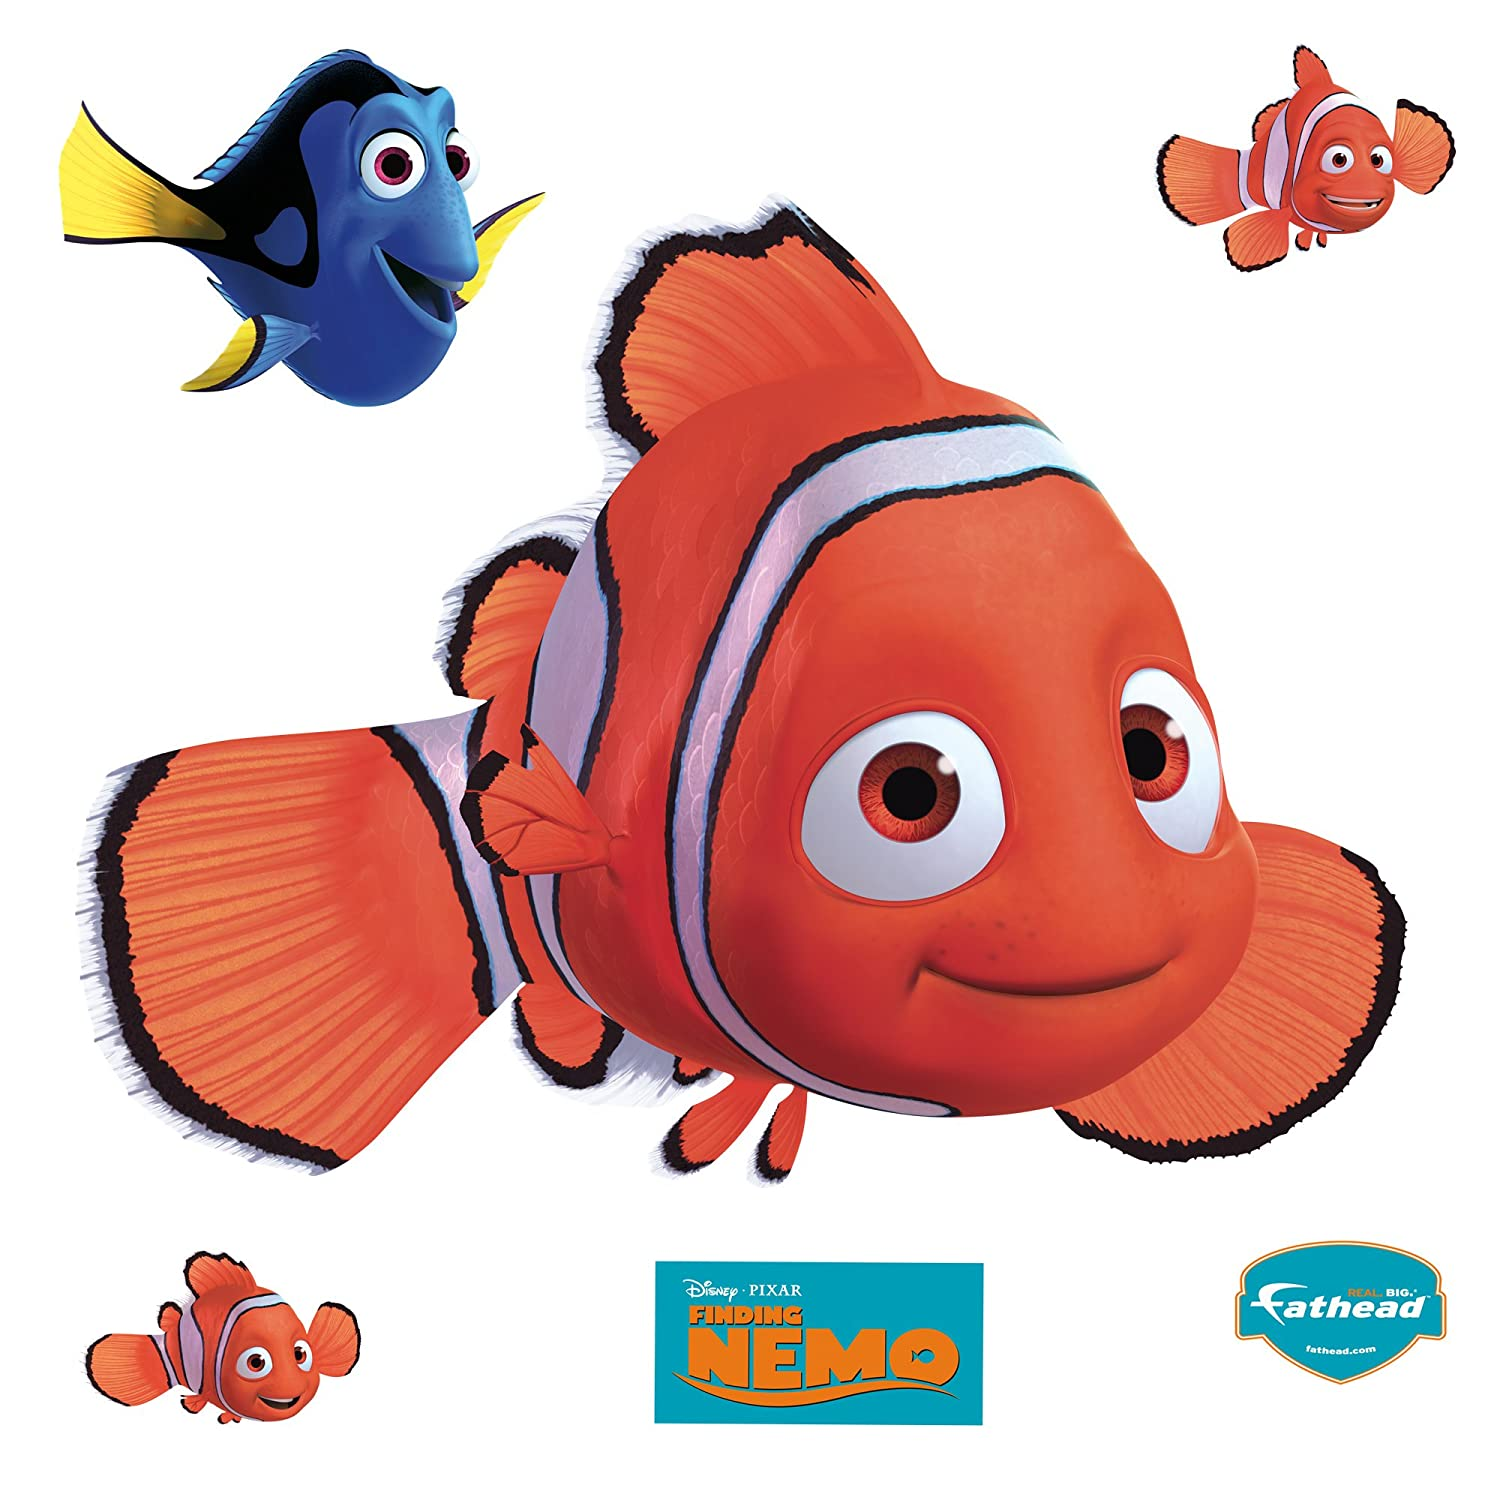 Amazon.com: Finding Nemo Wall Graphic: Home & Kitchen